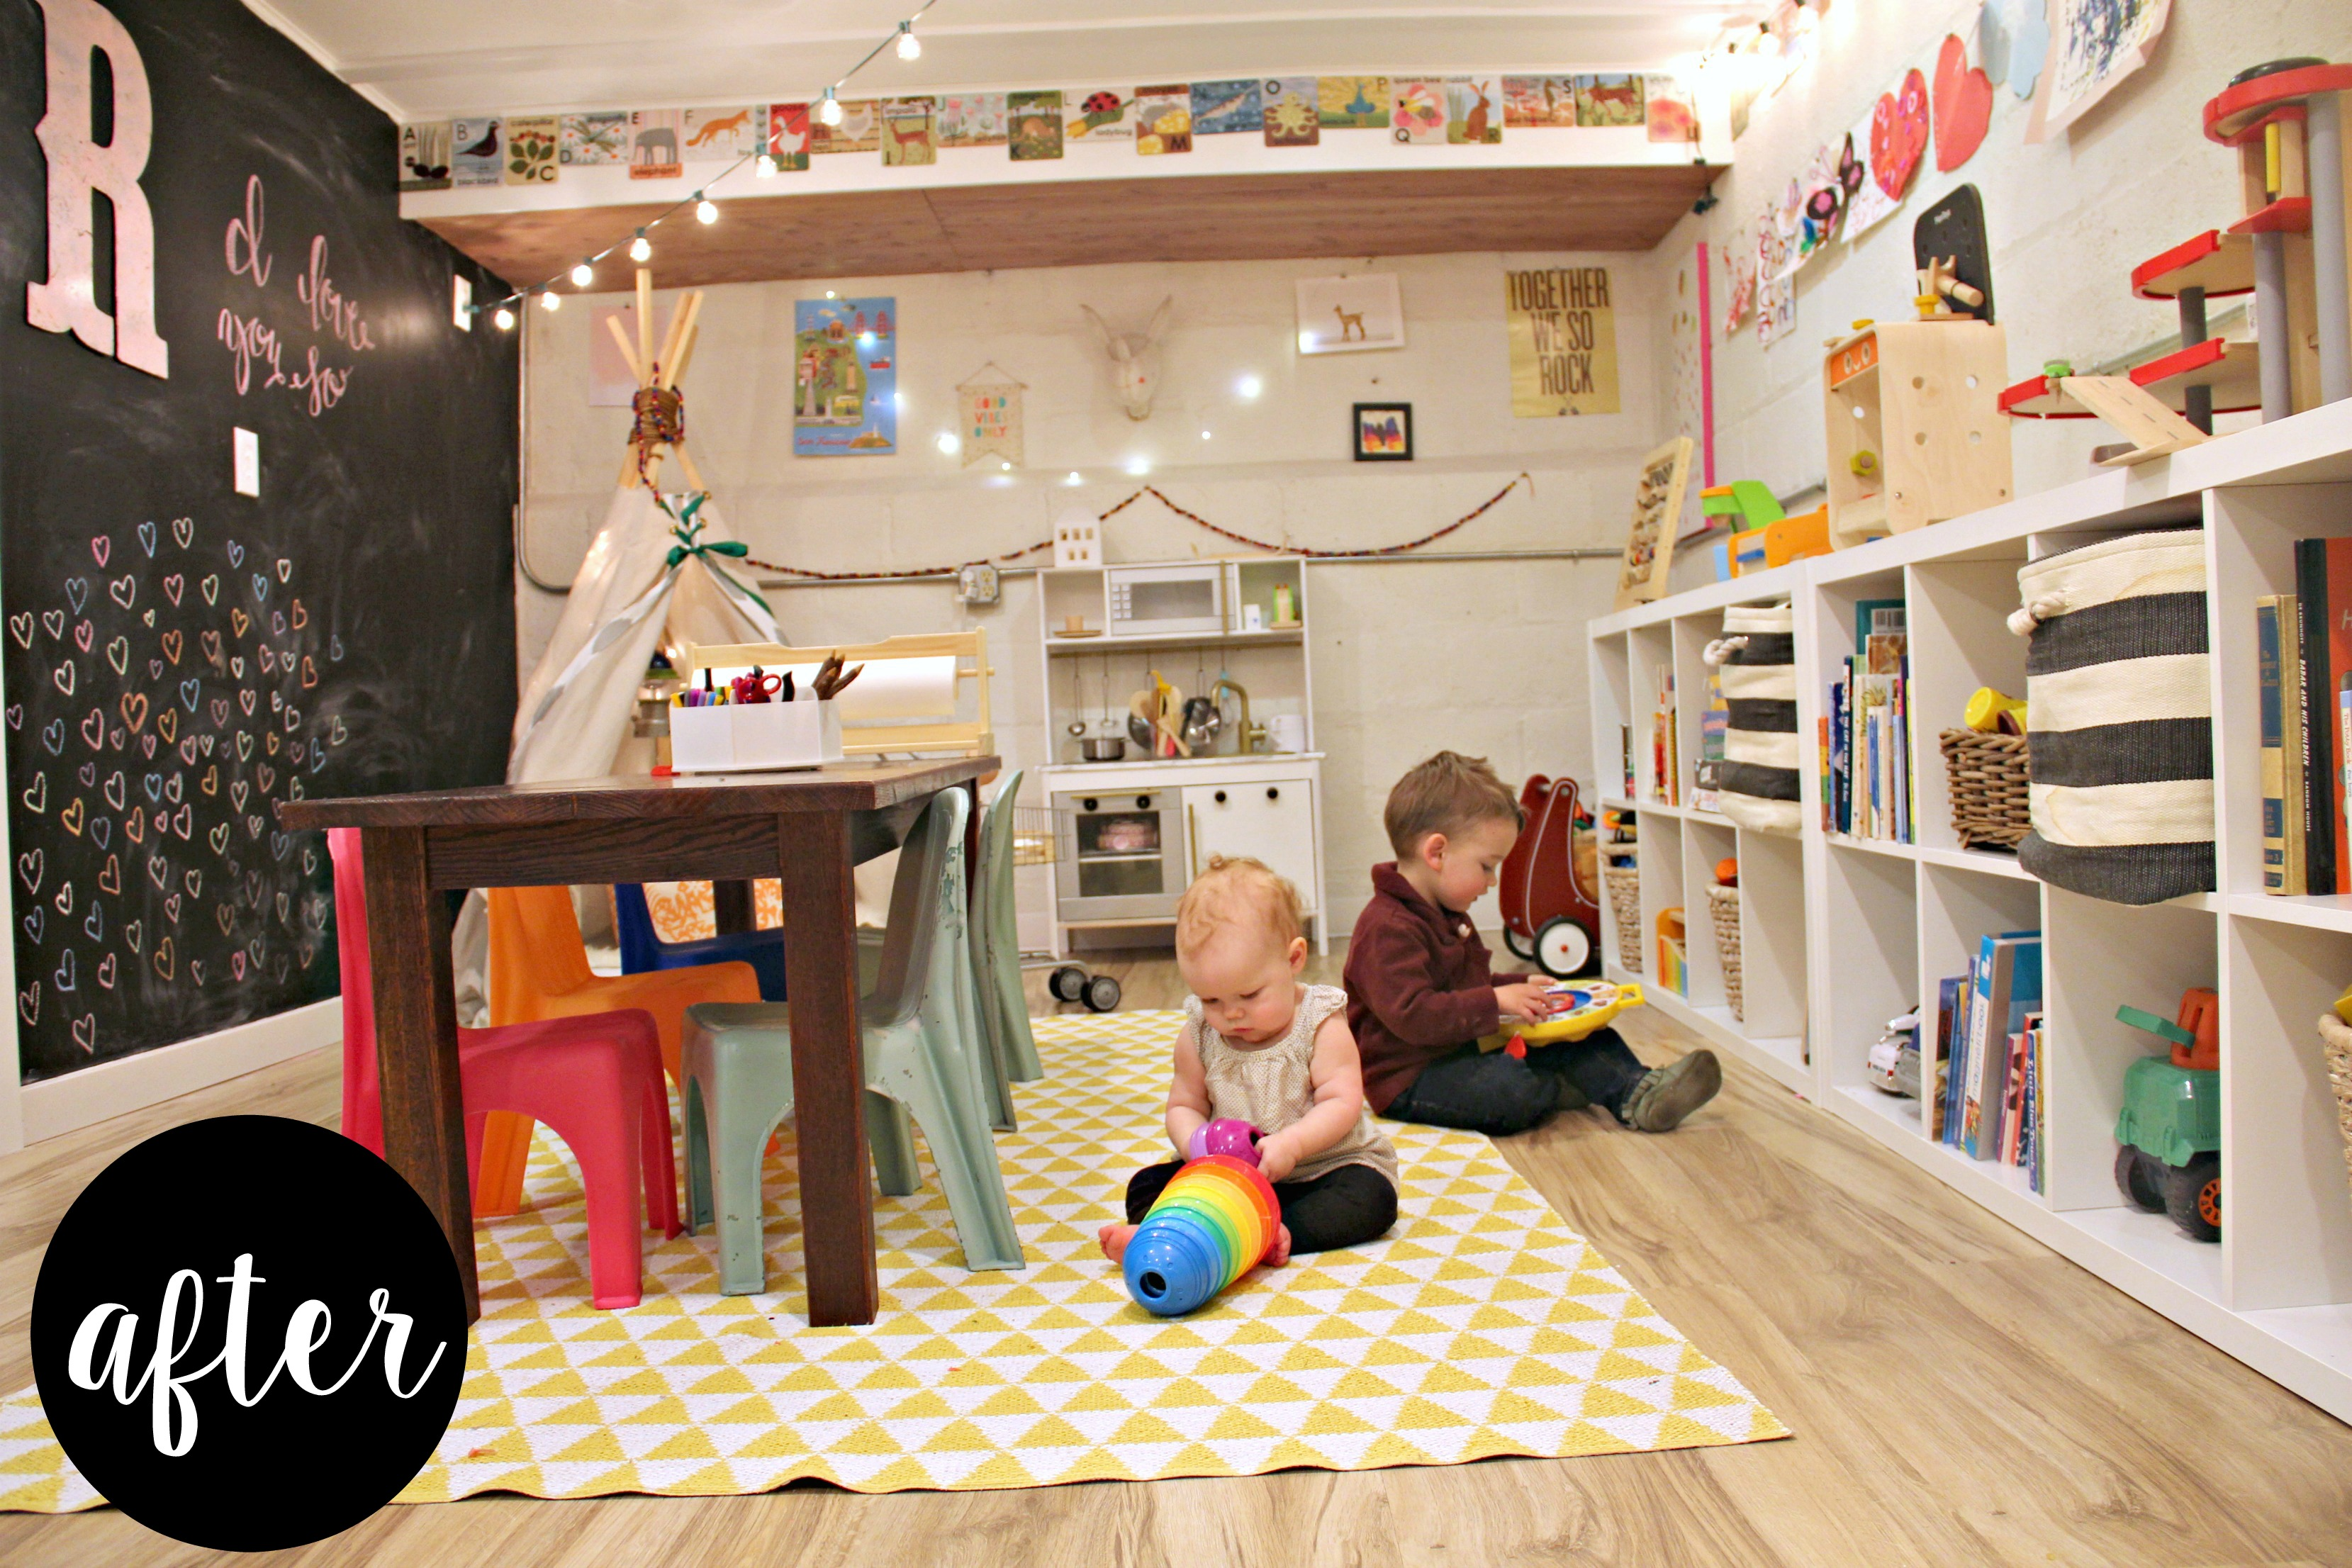 Basement Ideas For Kids A Whimsical Basement Playroom Project Nursery